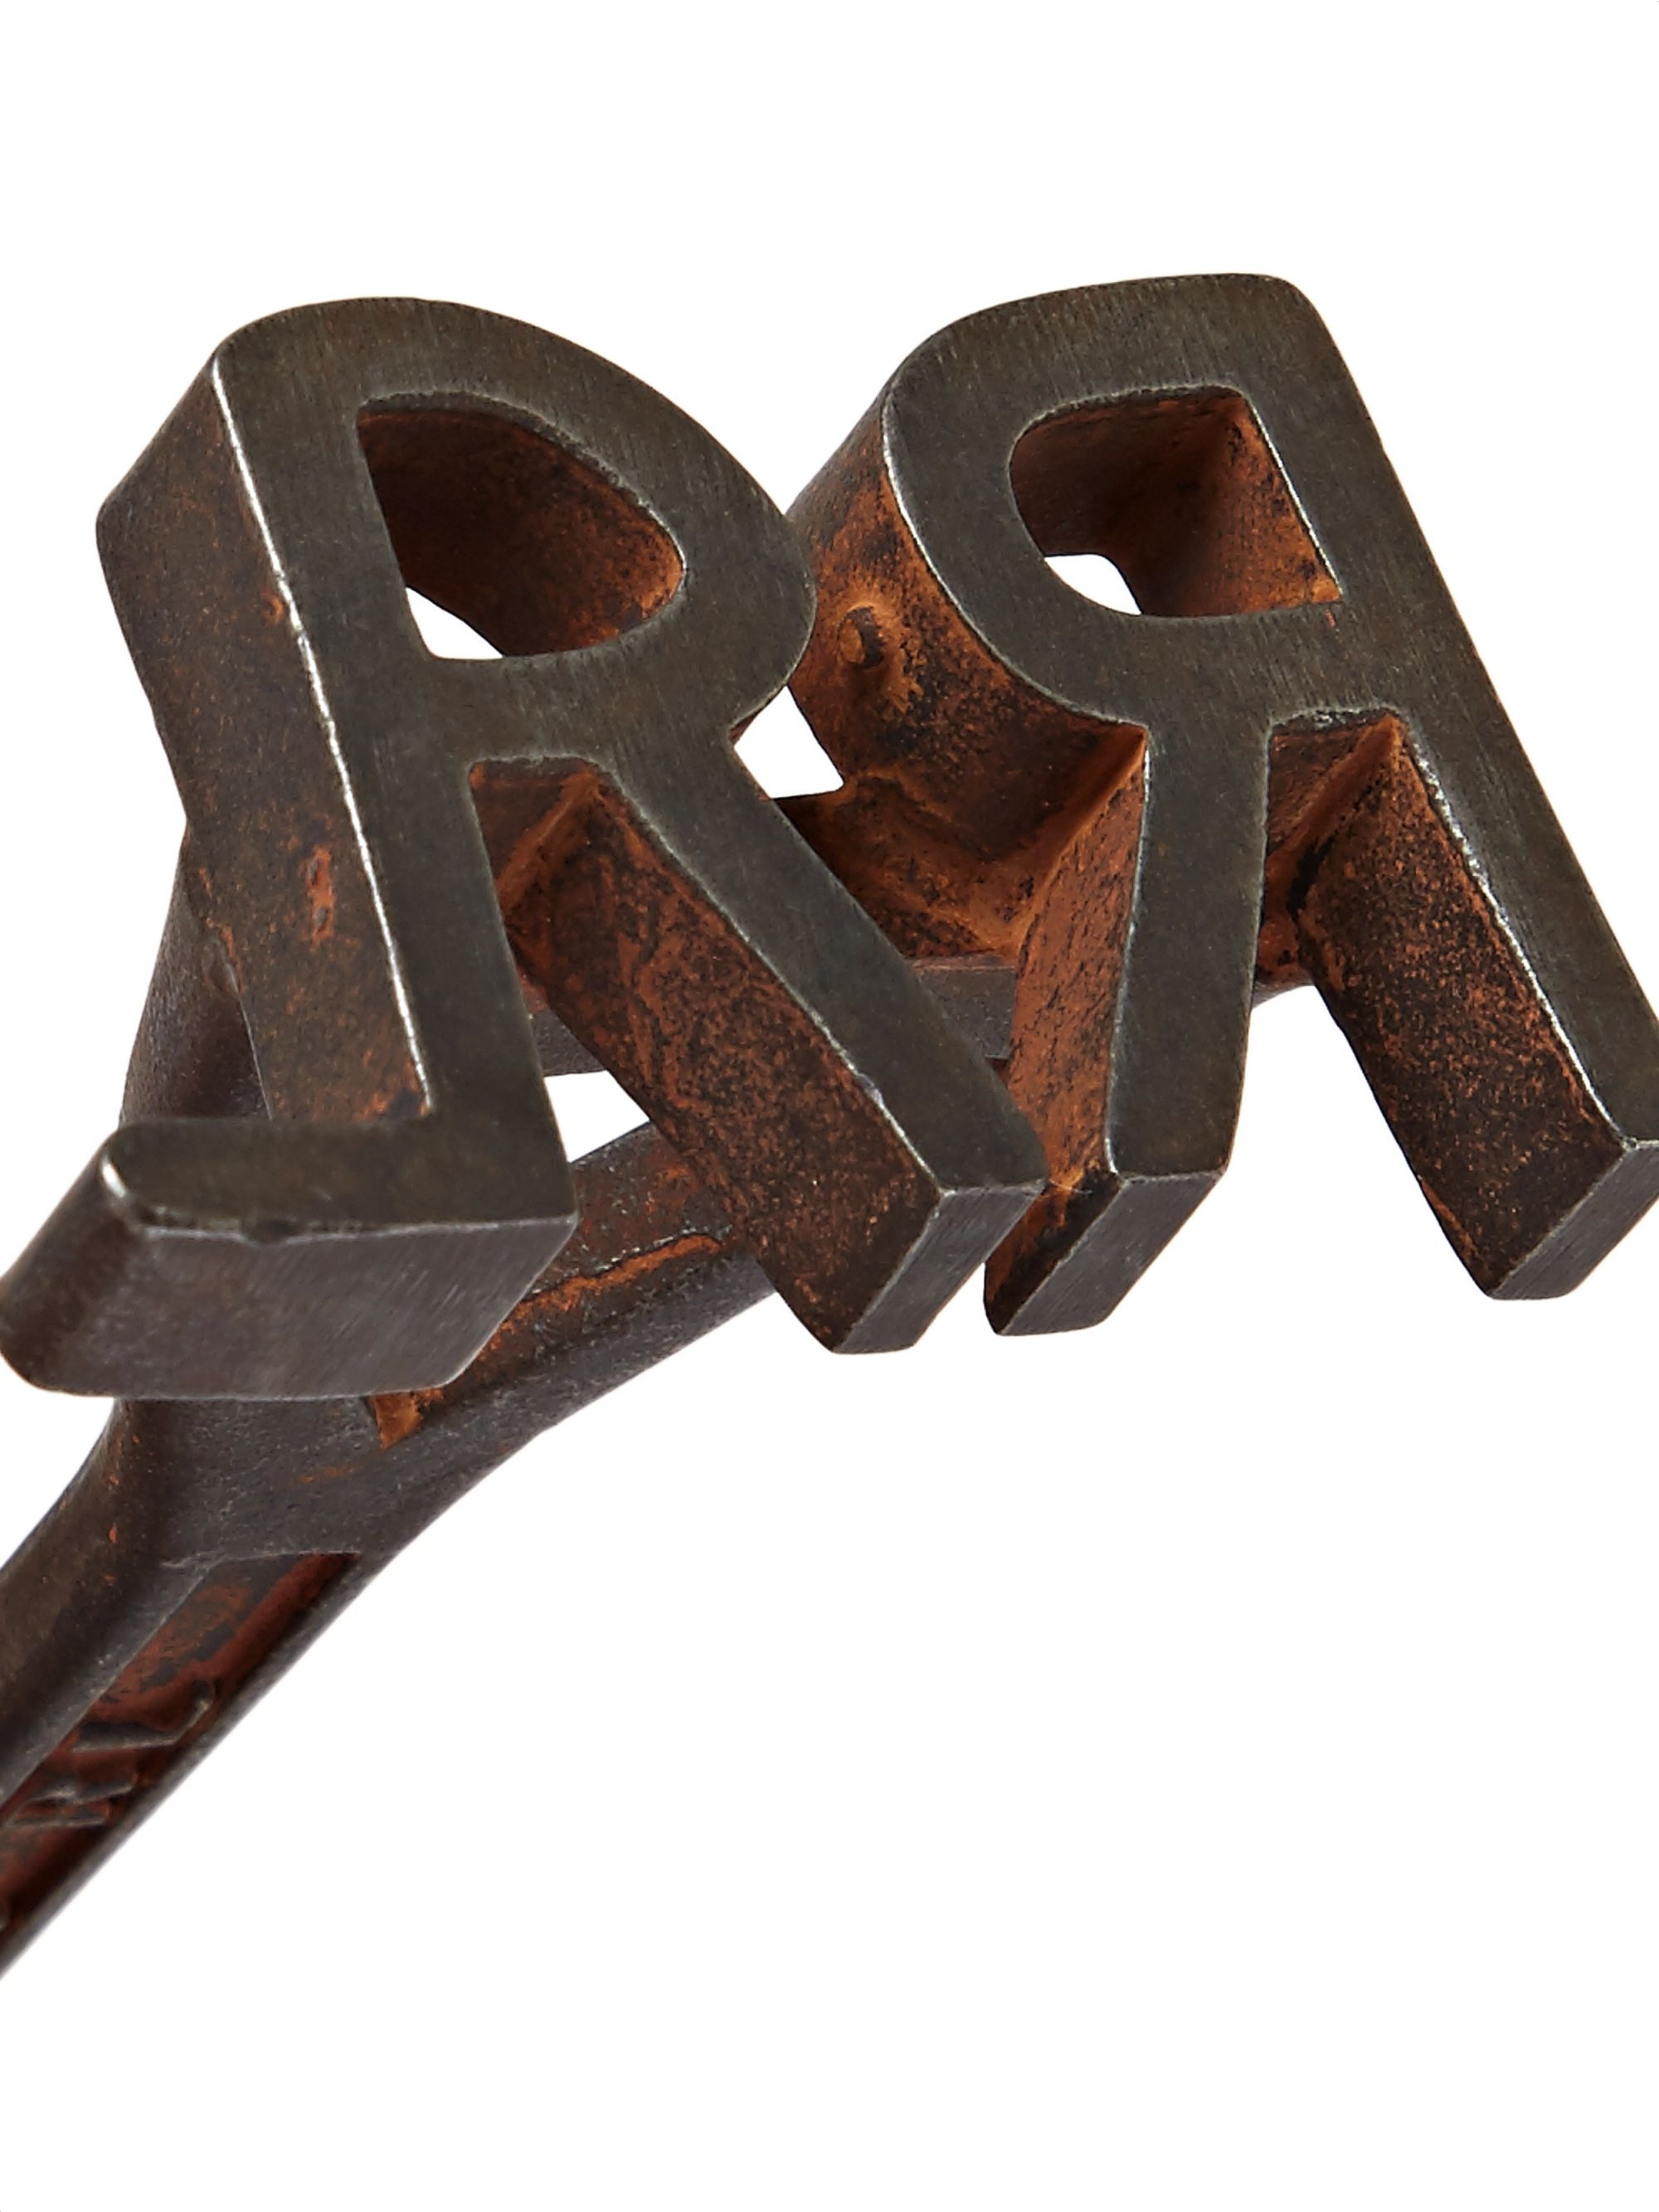 RRL Logo-Detailed Metal Bottle Opener